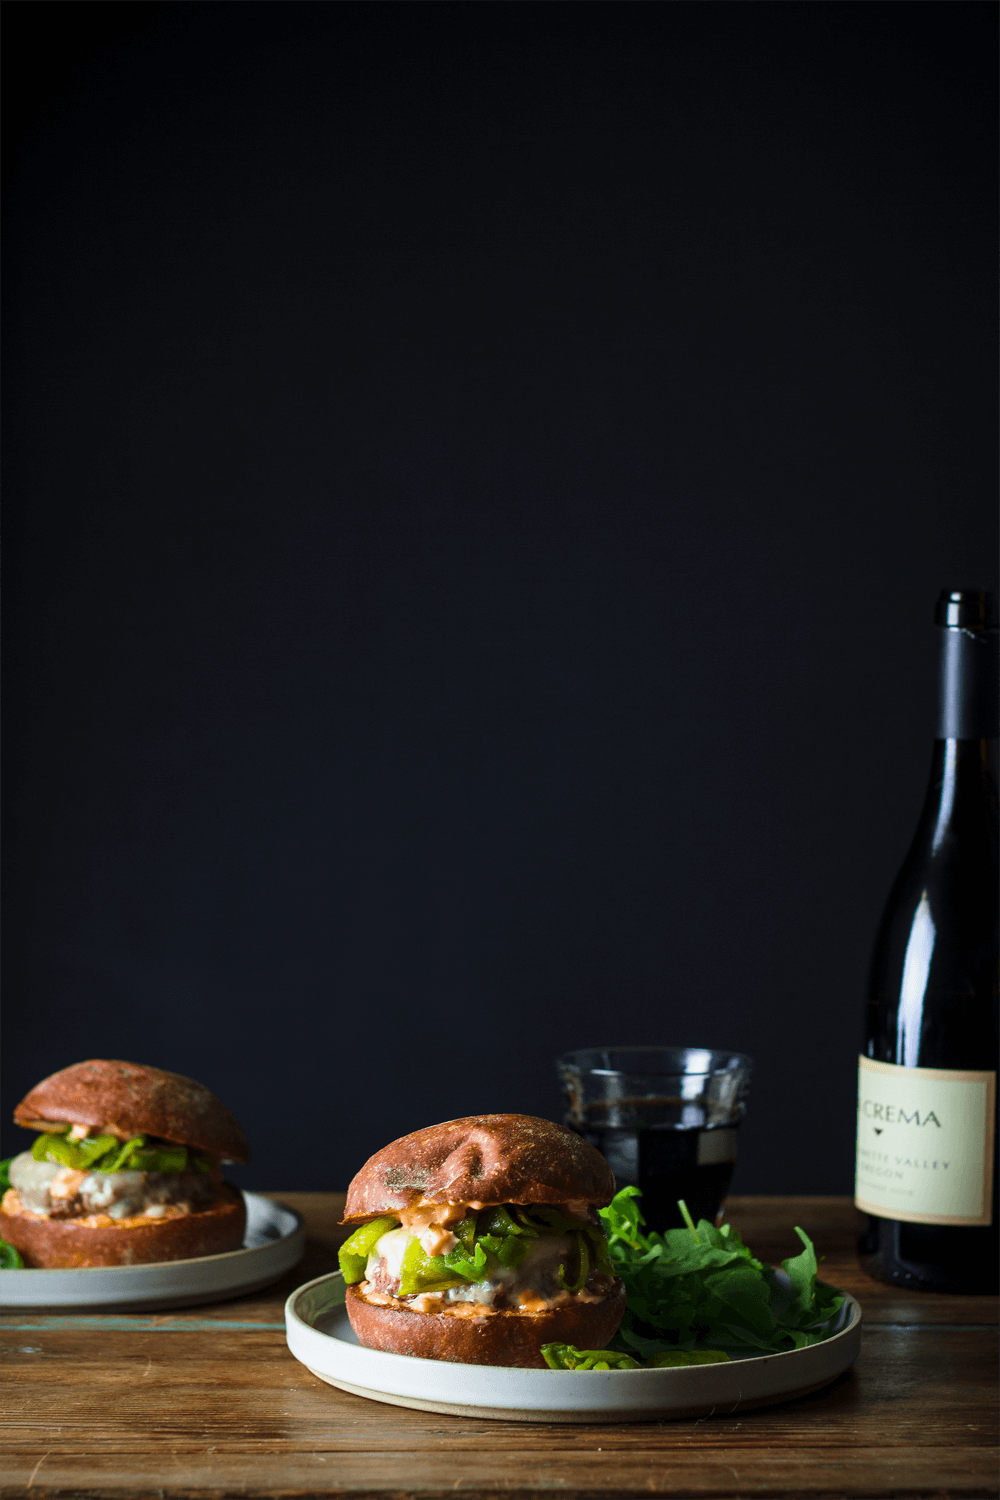 Roasted Hatch Chile Burger paired with La Crema Willamette Valley Pinot Noir